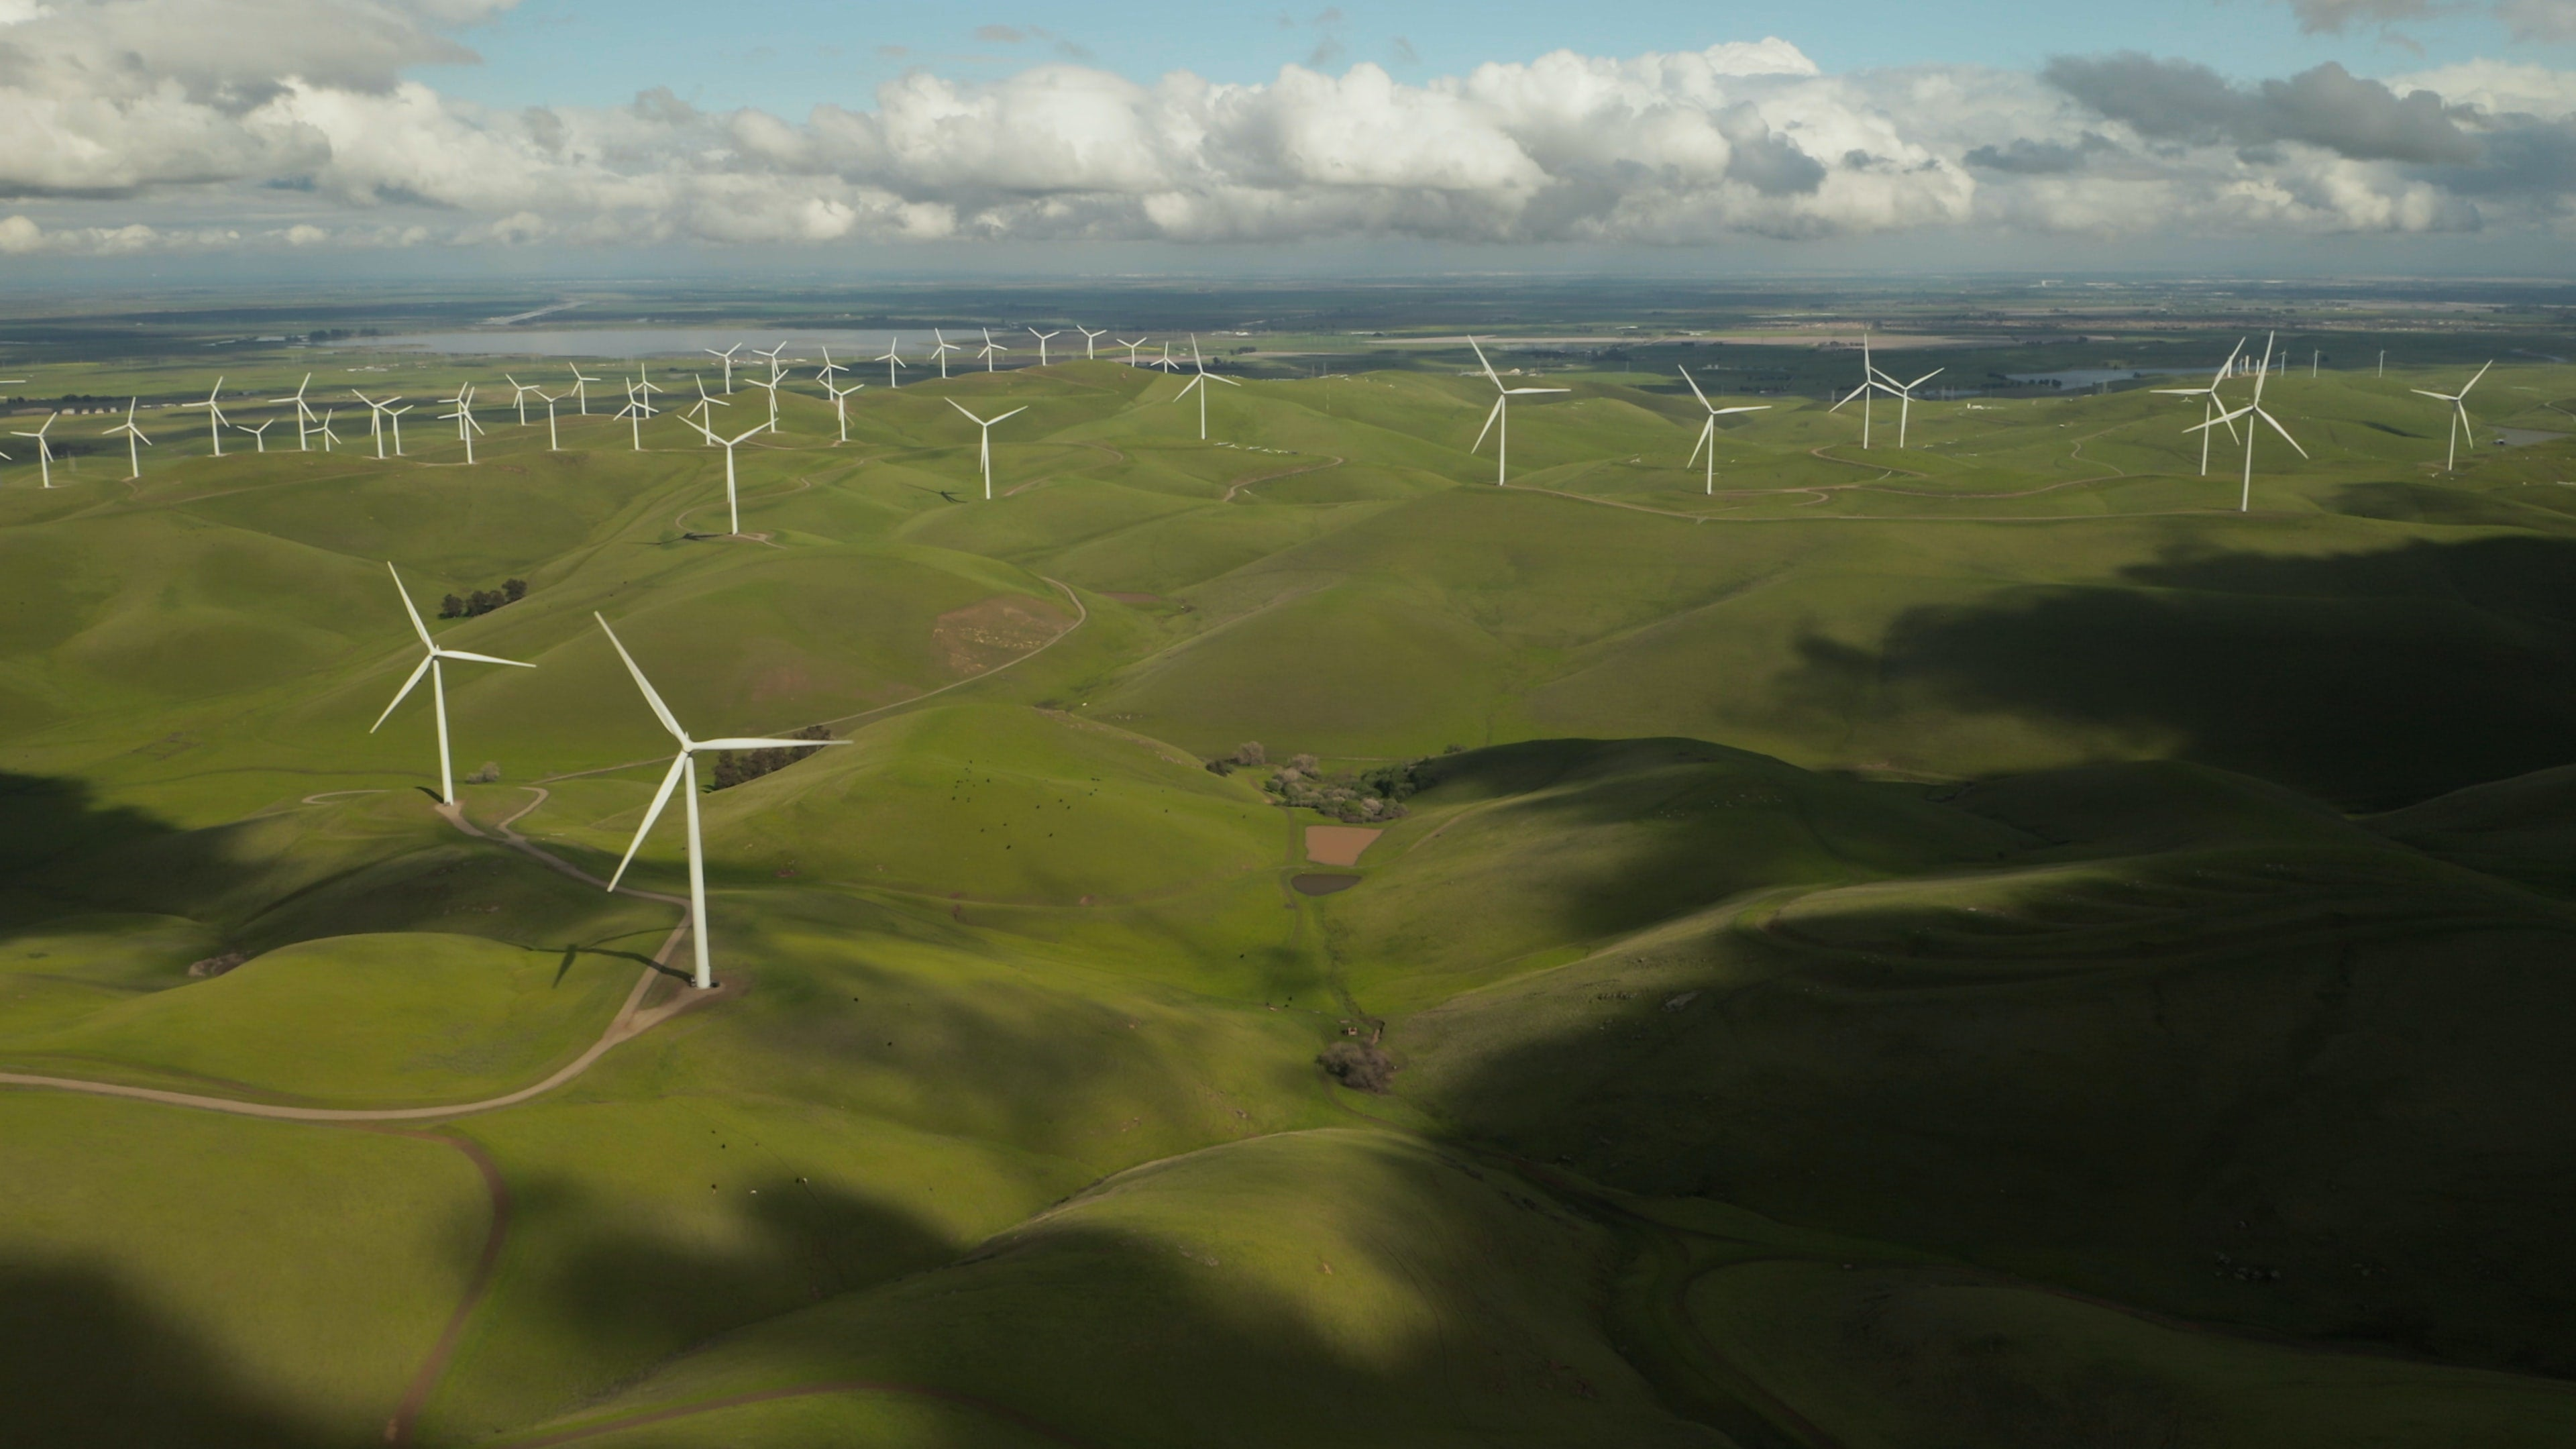 Arial shot of wind turbines on an undulating green landscape